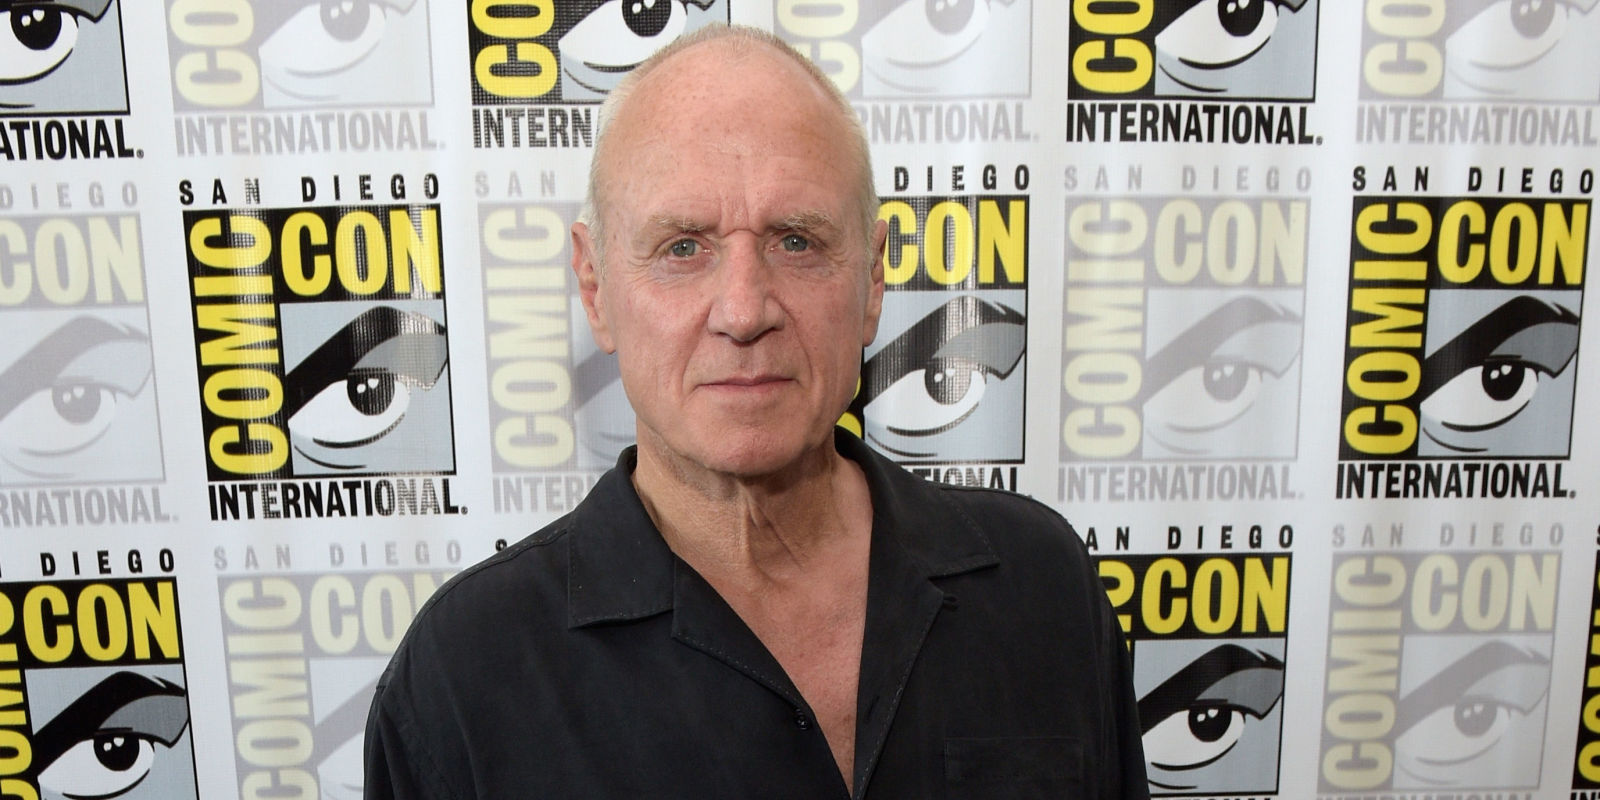 alan dale wifealan dale lost, alan dale young, alan dale, alan dale singer, alan dale robin hood, alan dale drummer, alan dale imdb, alan dale real estate, alan dale trailers, alan dale net worth, alan dale ncis, alan dale wife, alan dale estate agents, alan dale walker, alan dale gossip girl, alan dale entourage, alan dale once upon a time, alan dale 24, alan dale jfk, alan dale carpets